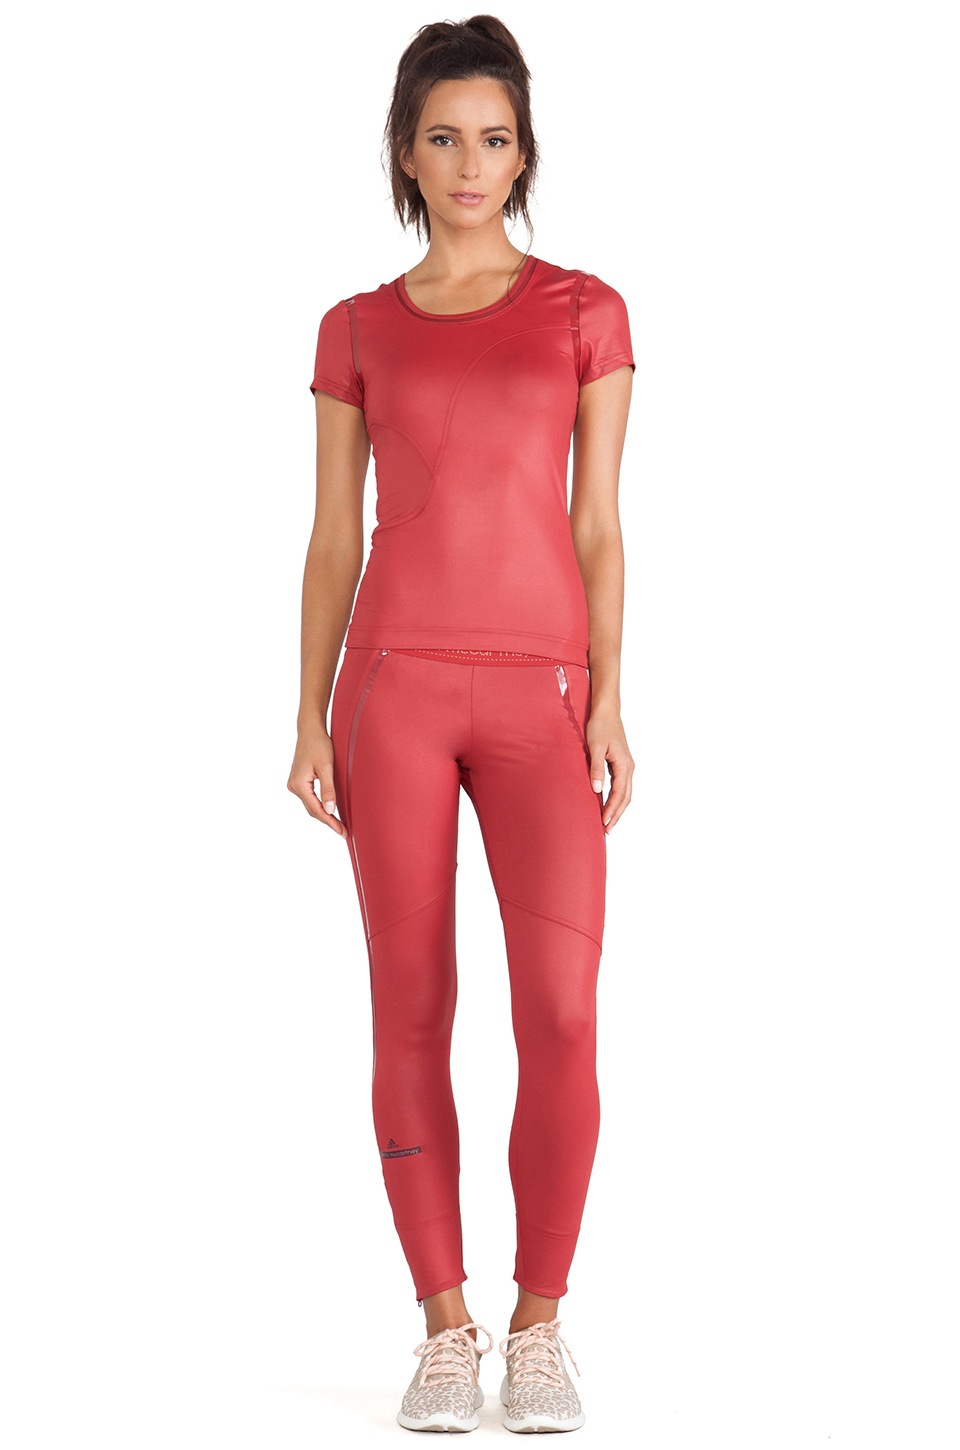 Adidas by stella mccartney Perforated Running Tights in Red | Lyst